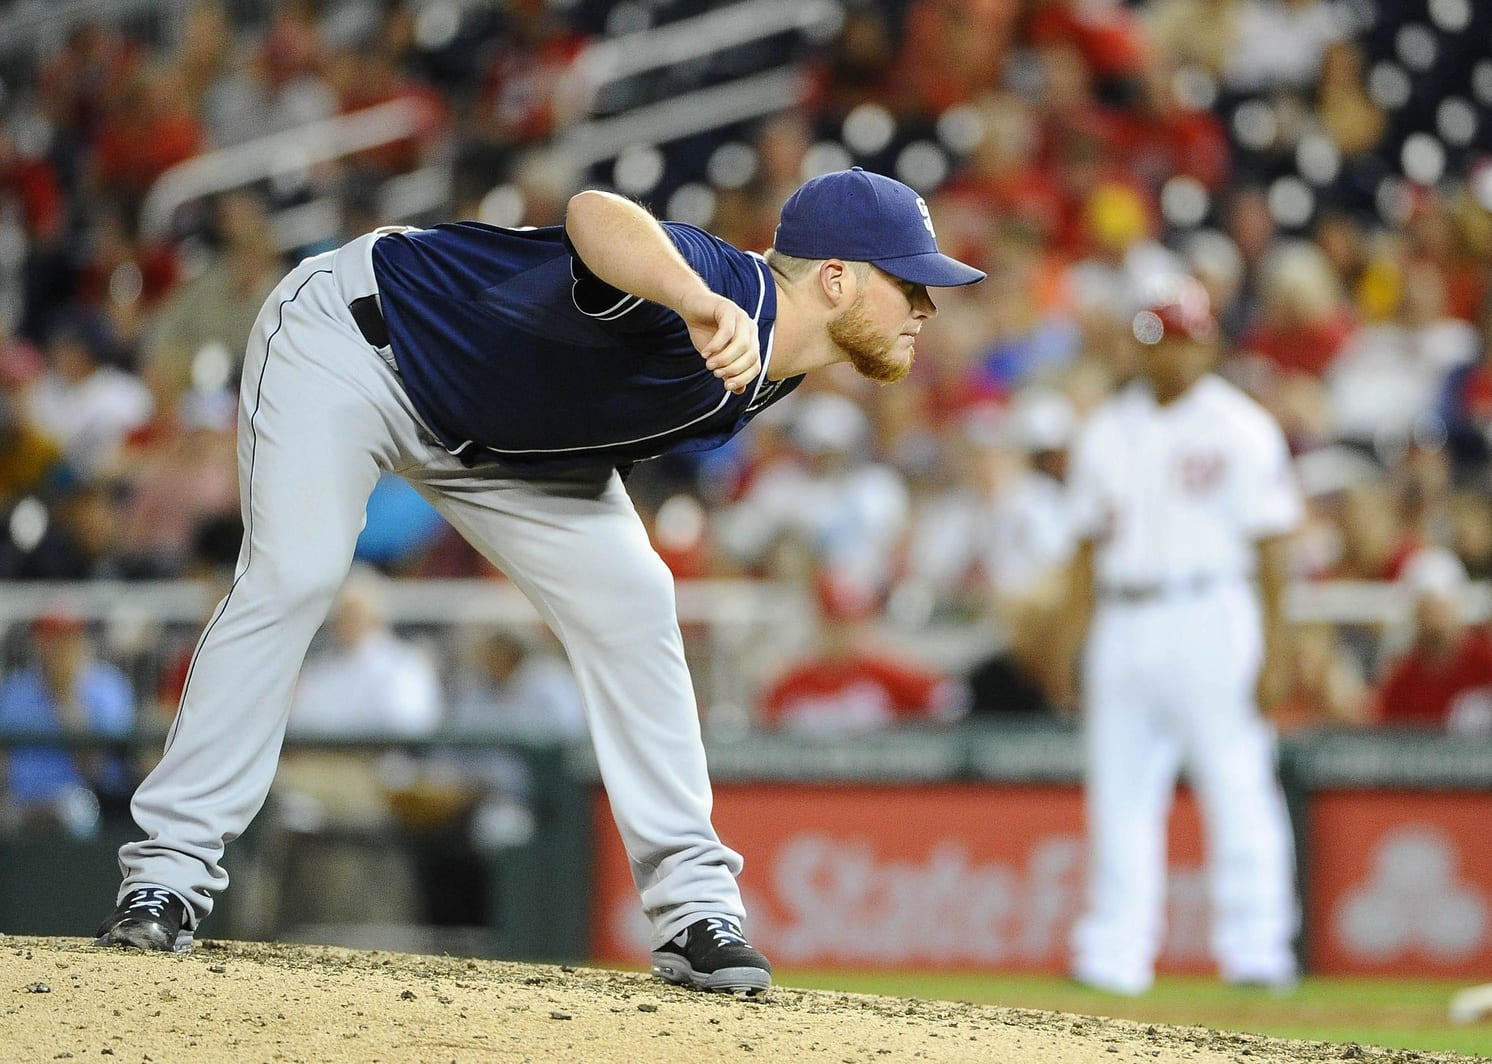 Padres Complete Trades To Send Joaquin Benoit, Craig Kimbrel Out Of Nl West